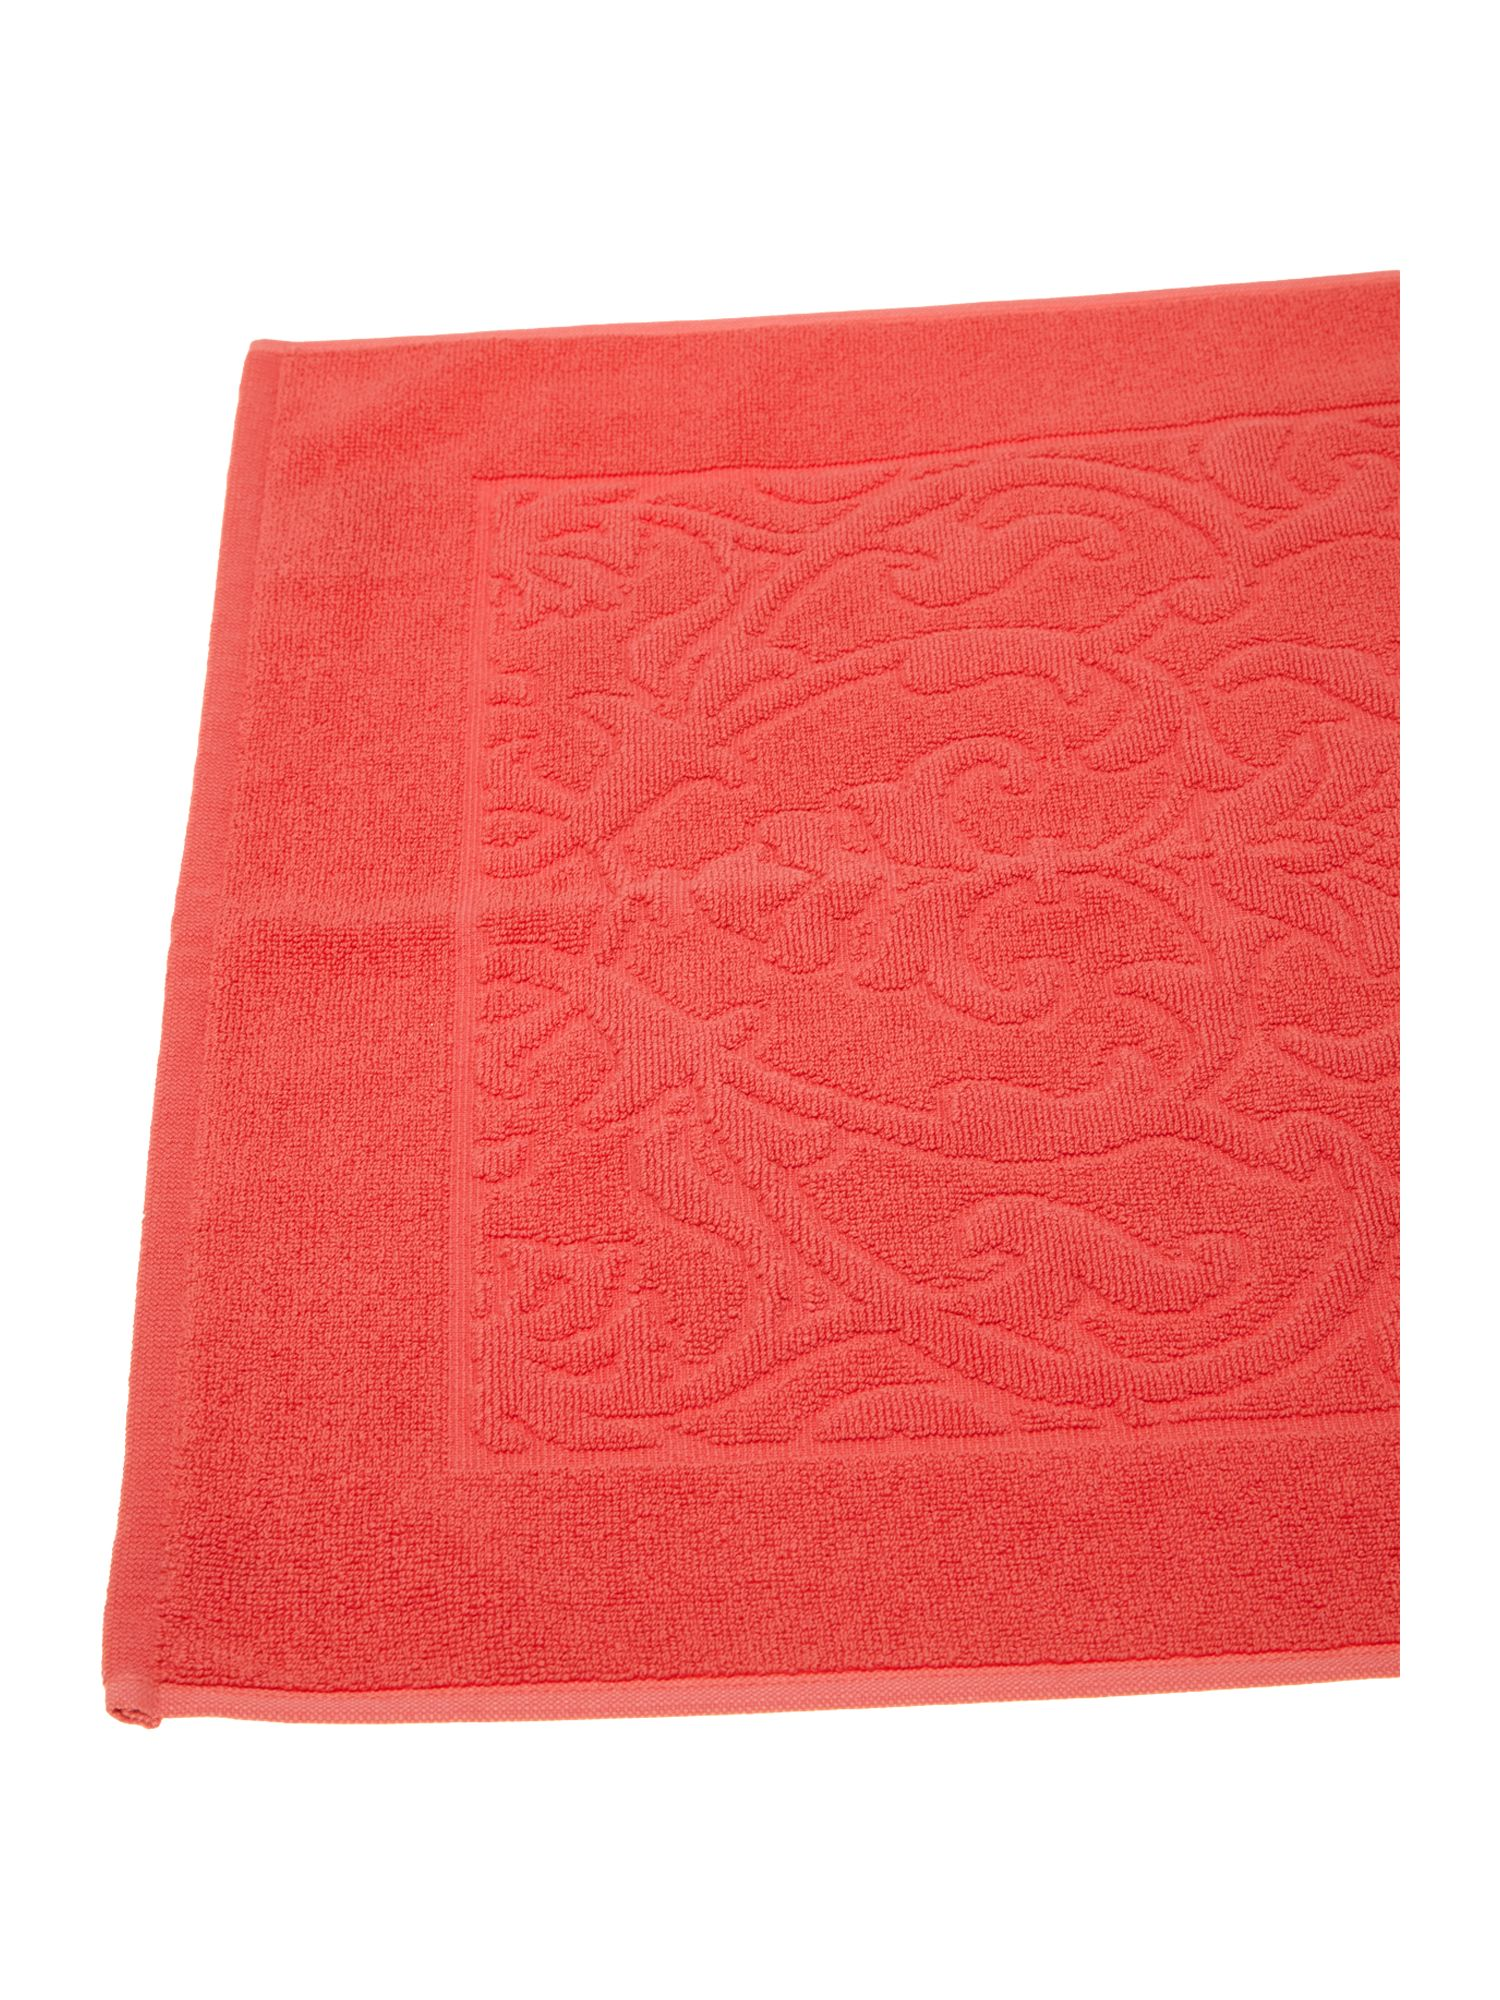 Heavy jacquard bath mat in coral